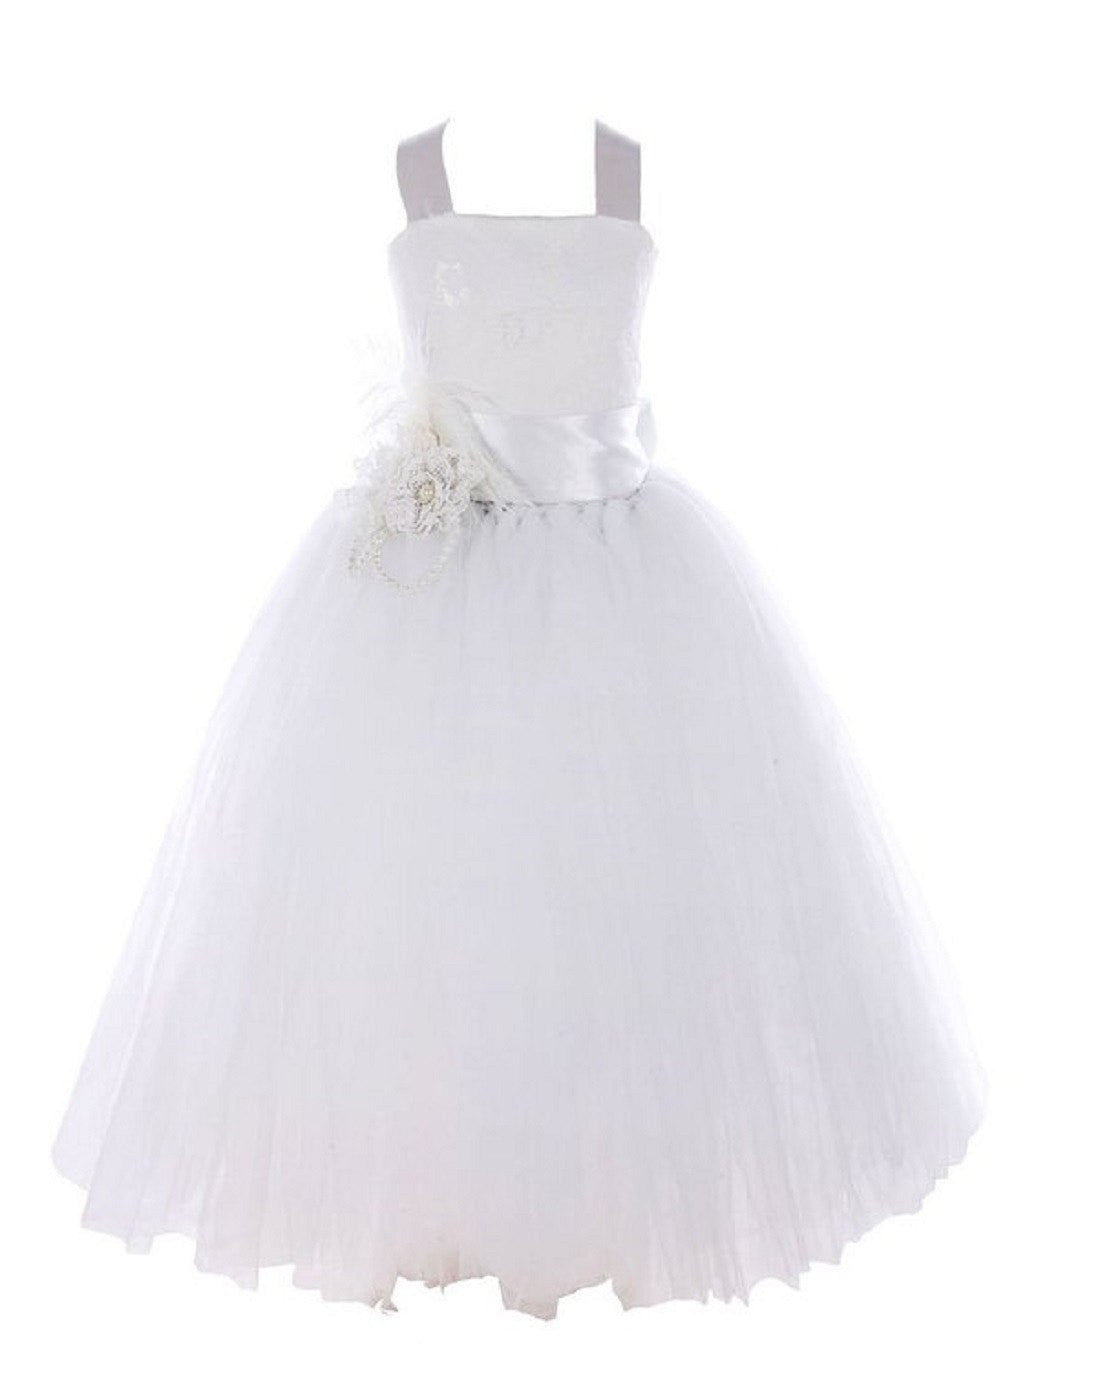 Fairy tutu flower girl dress white efavormart fairy tutu flower girl dress white mightylinksfo